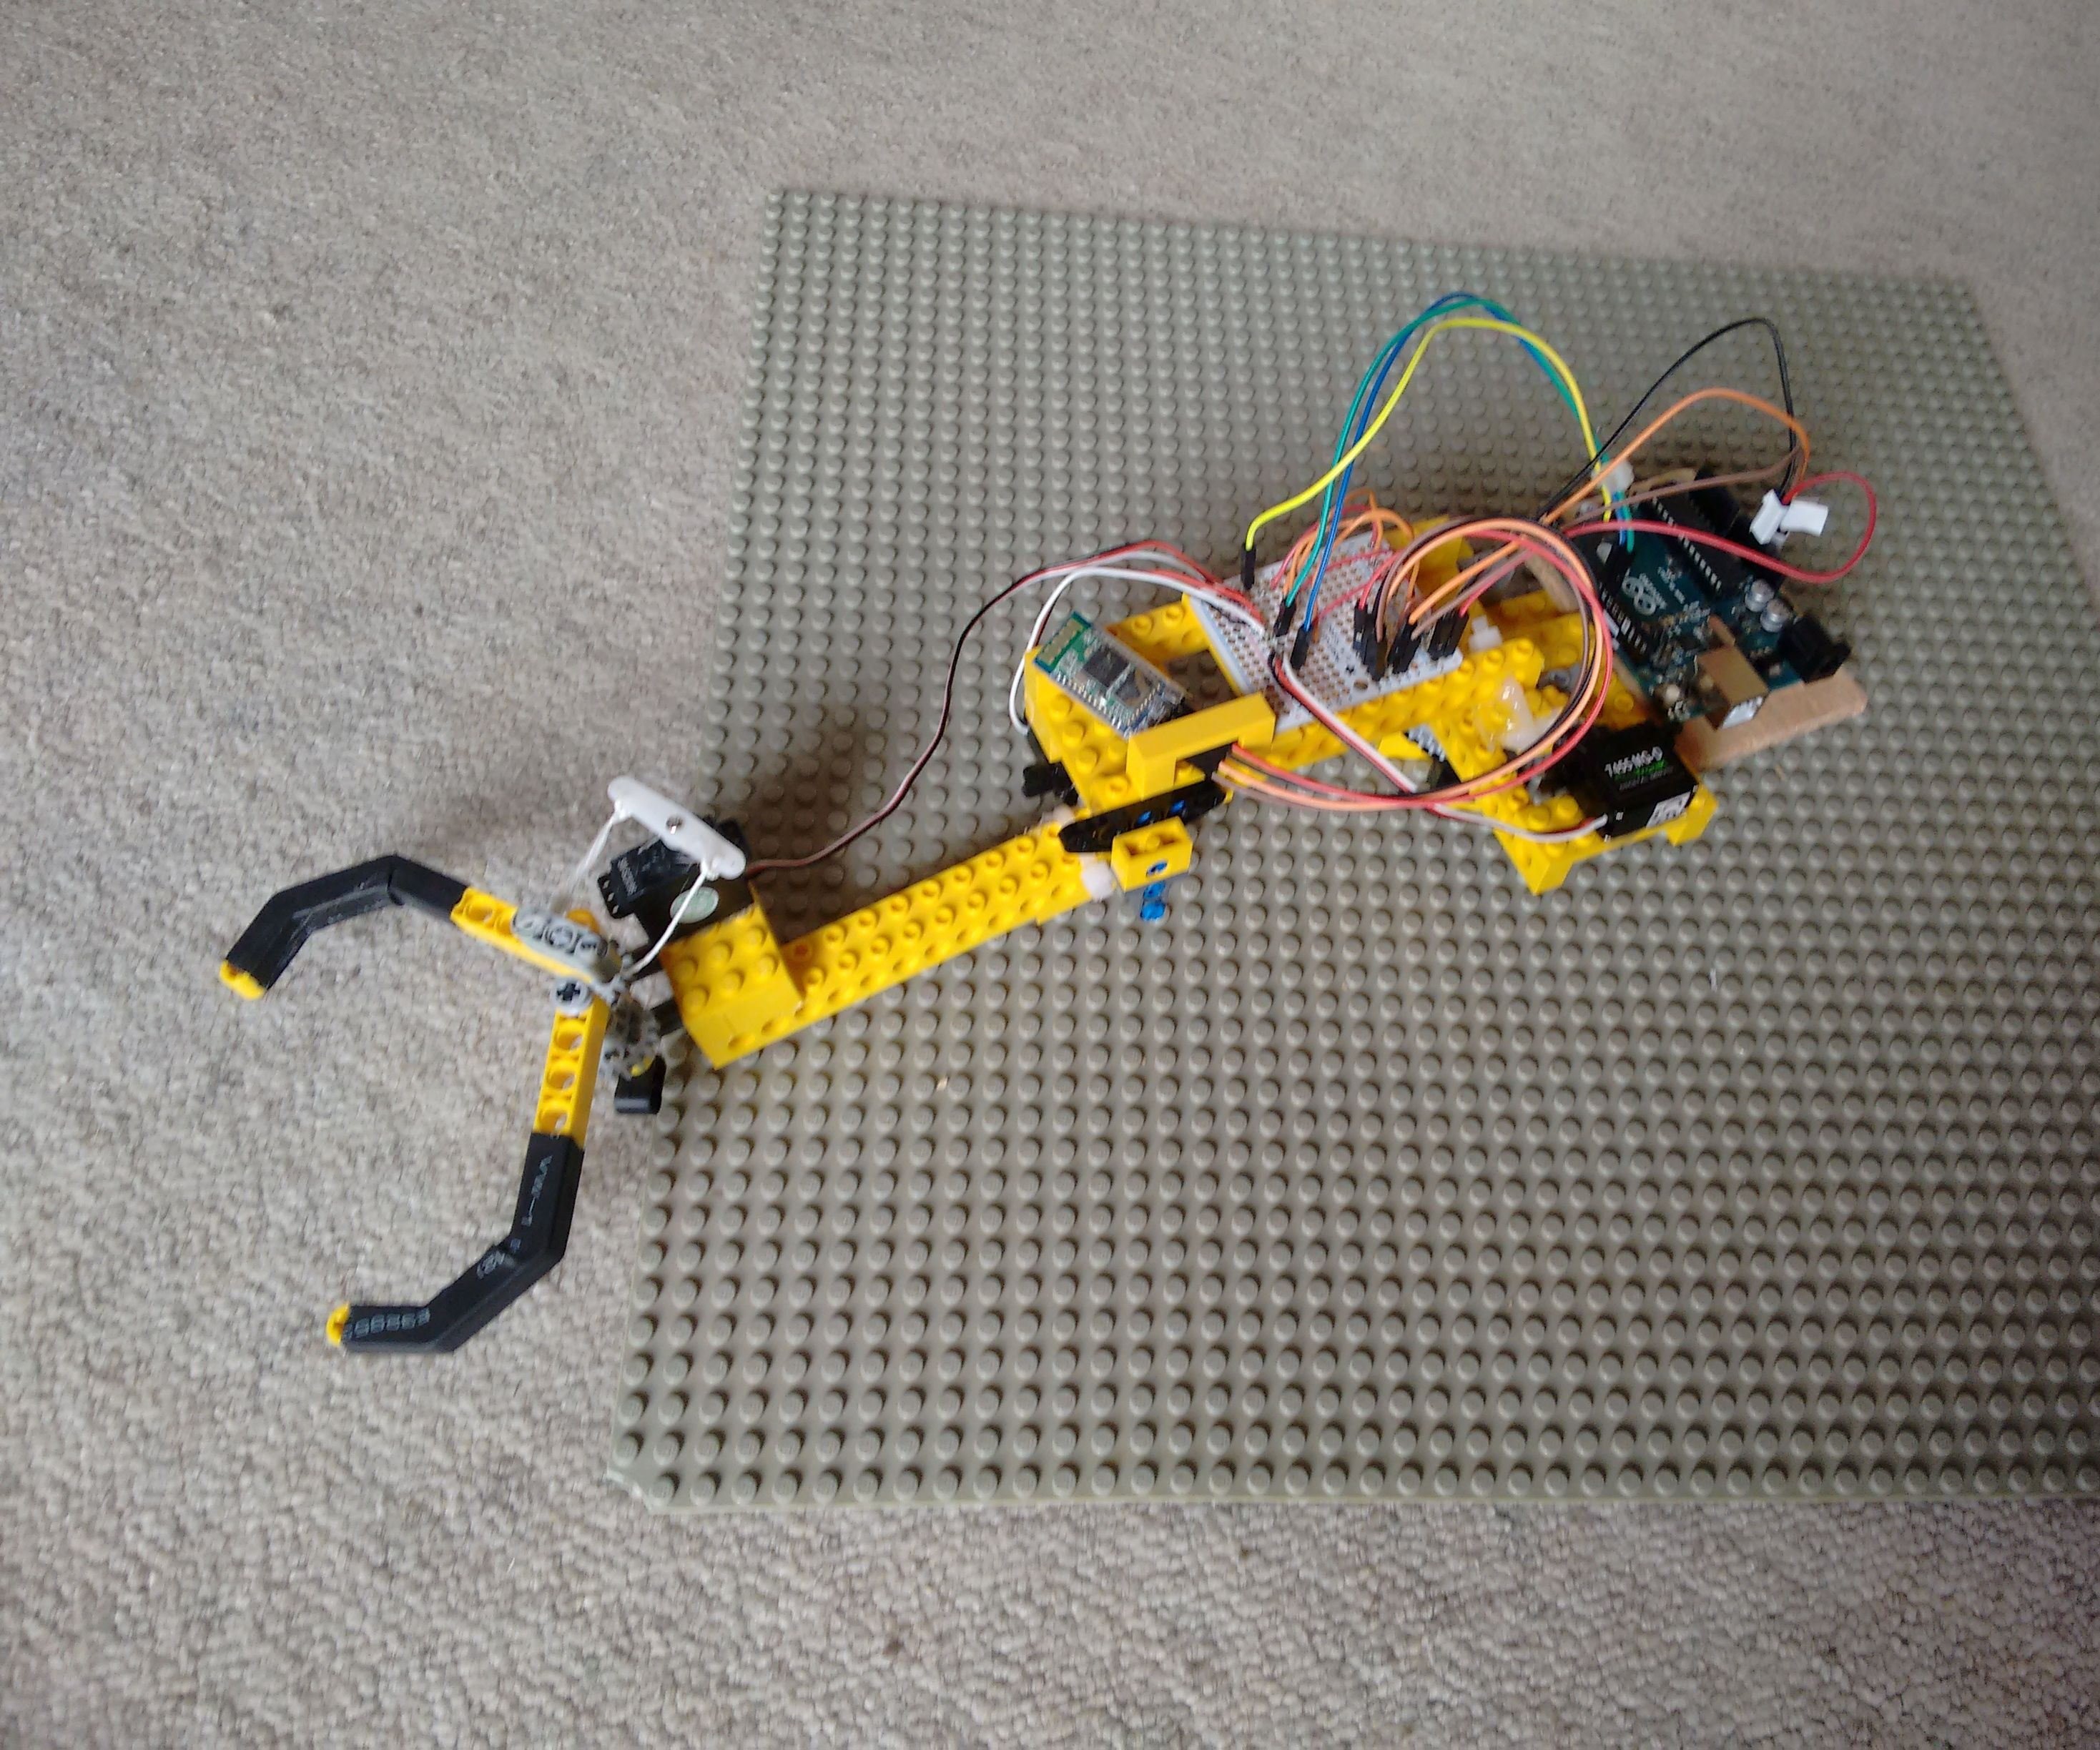 Bluetooth Robot Arm + App | Arduino & Android